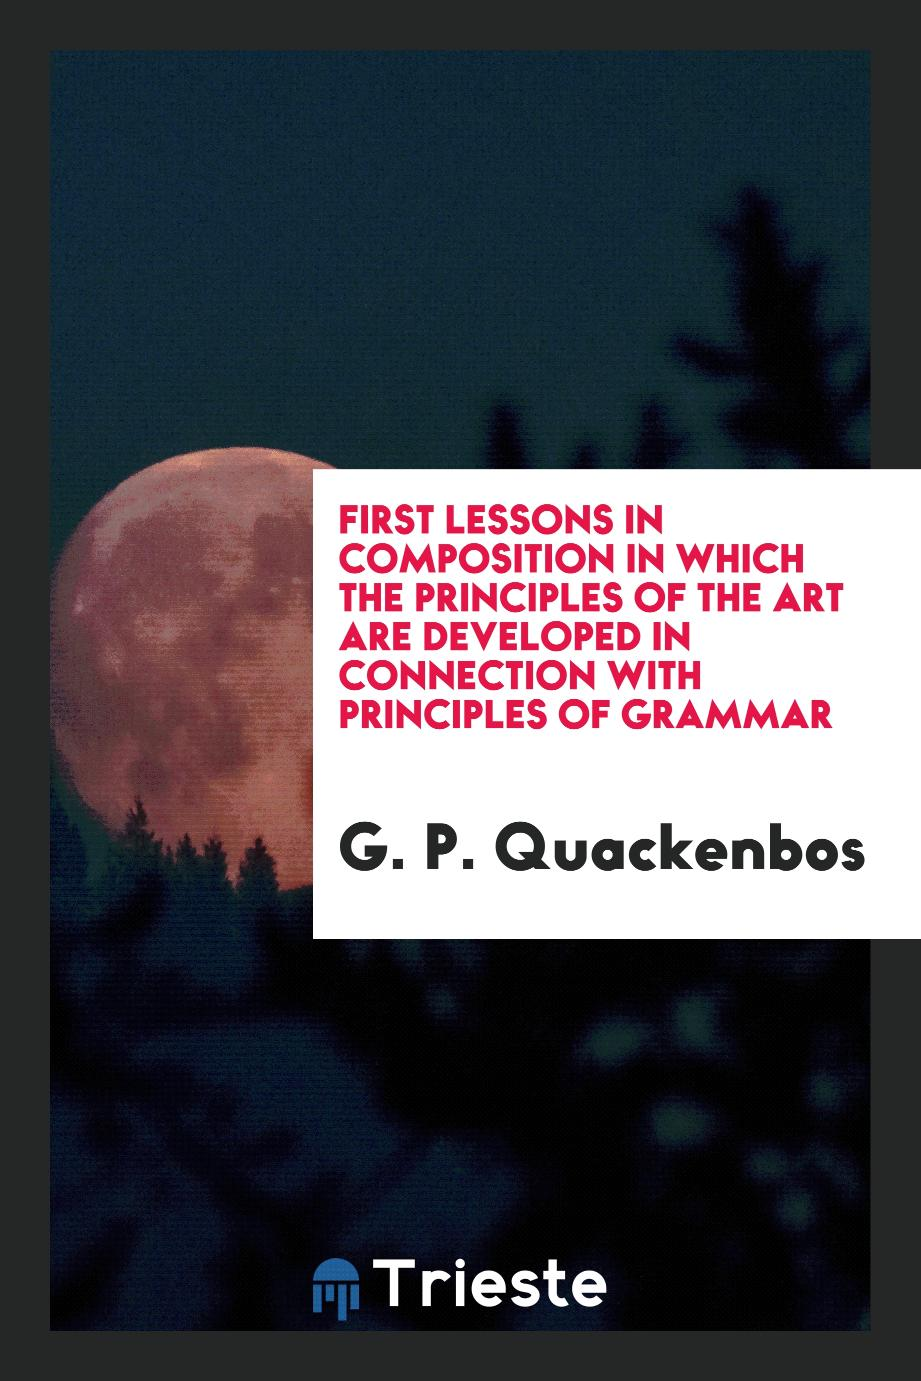 First Lessons in Composition in Which the Principles of the Art Are Developed in Connection with Principles of Grammar